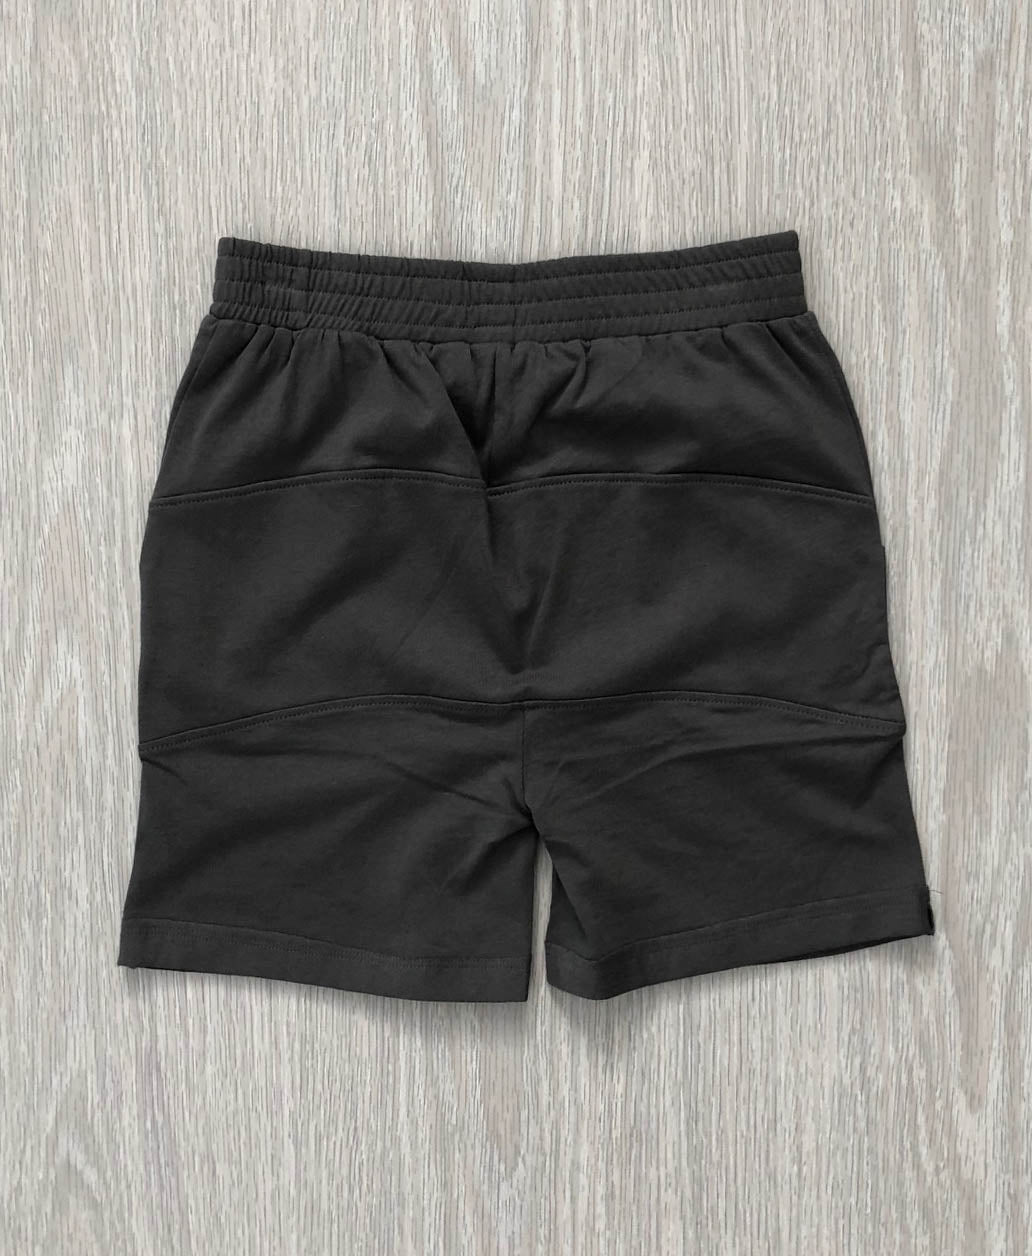 Organic Cotton Shorts kids fashion OKI